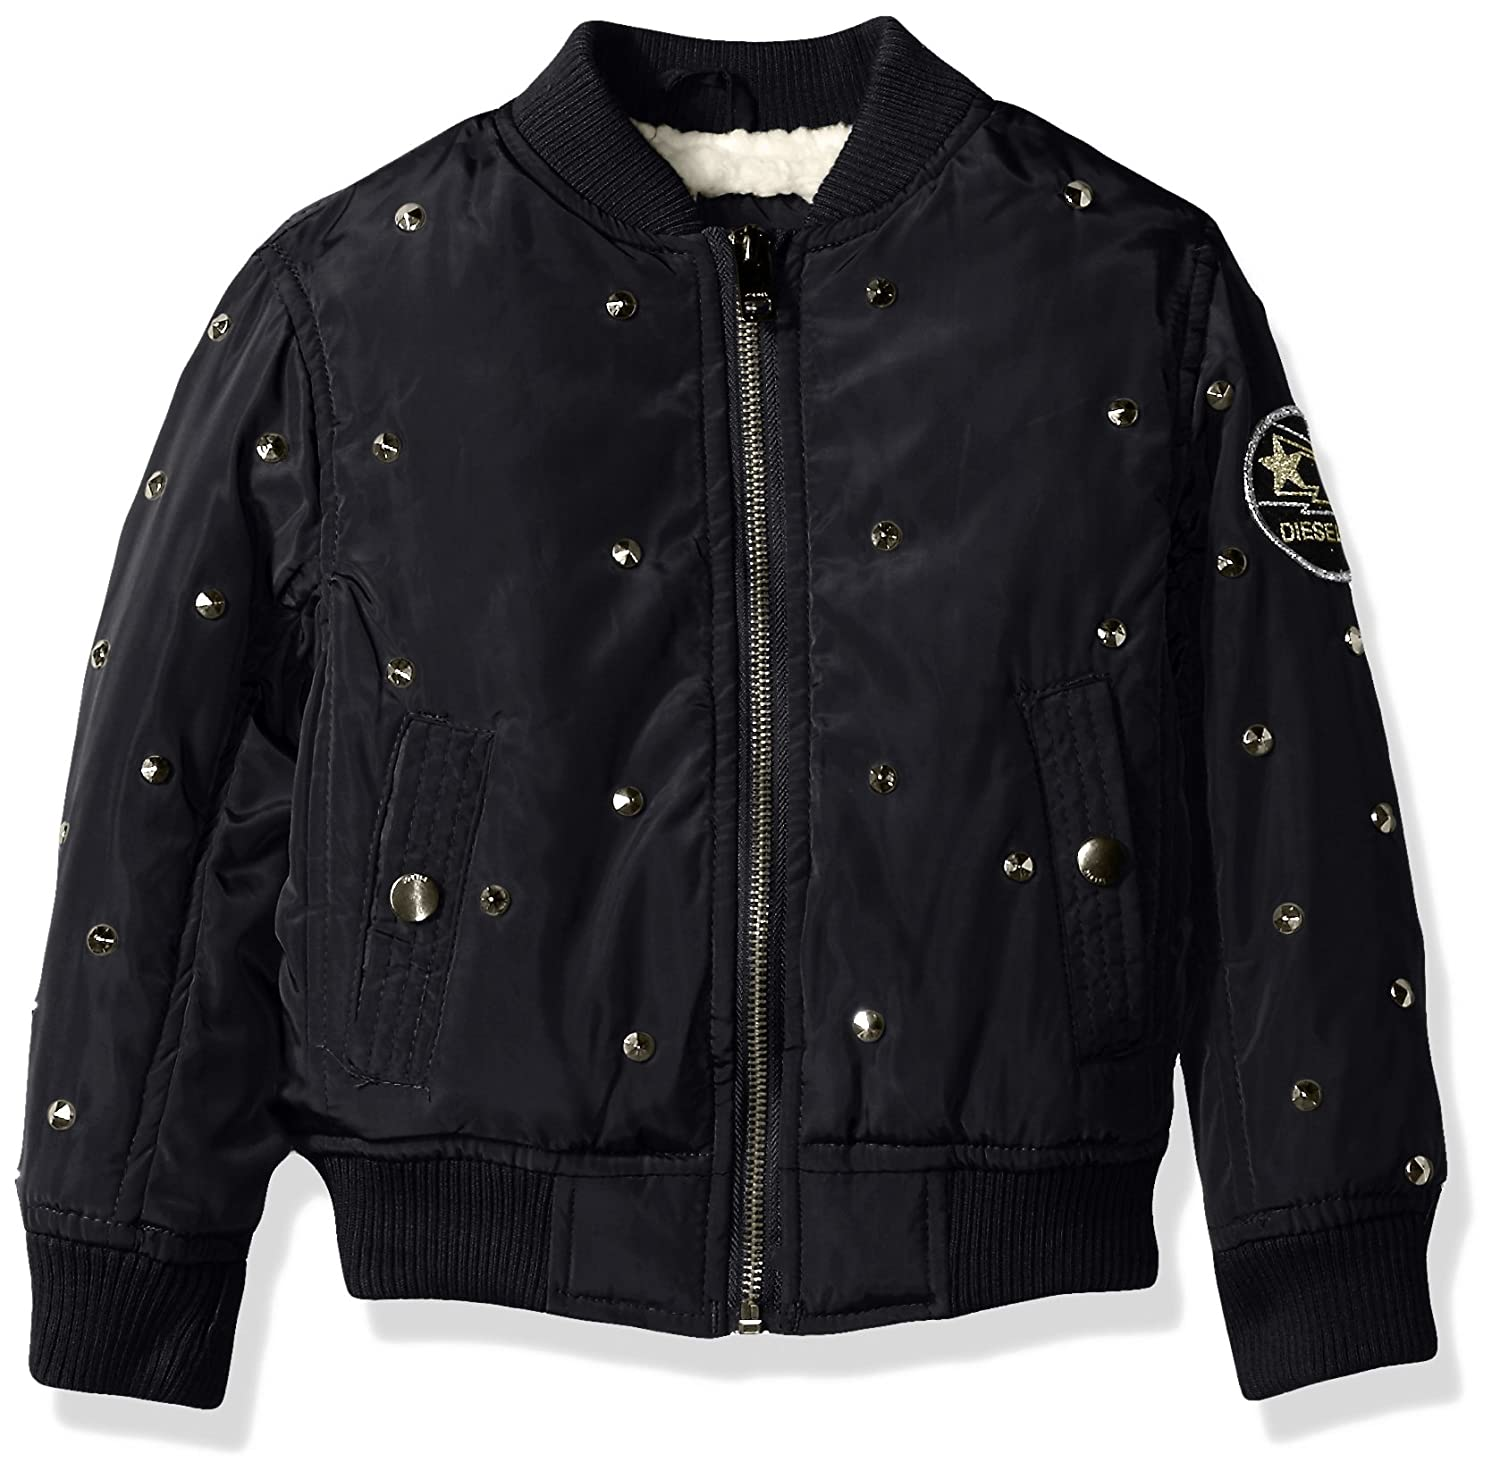 Girls Outerwear Jacket More Styles Available Diesel Children/'s Apparel